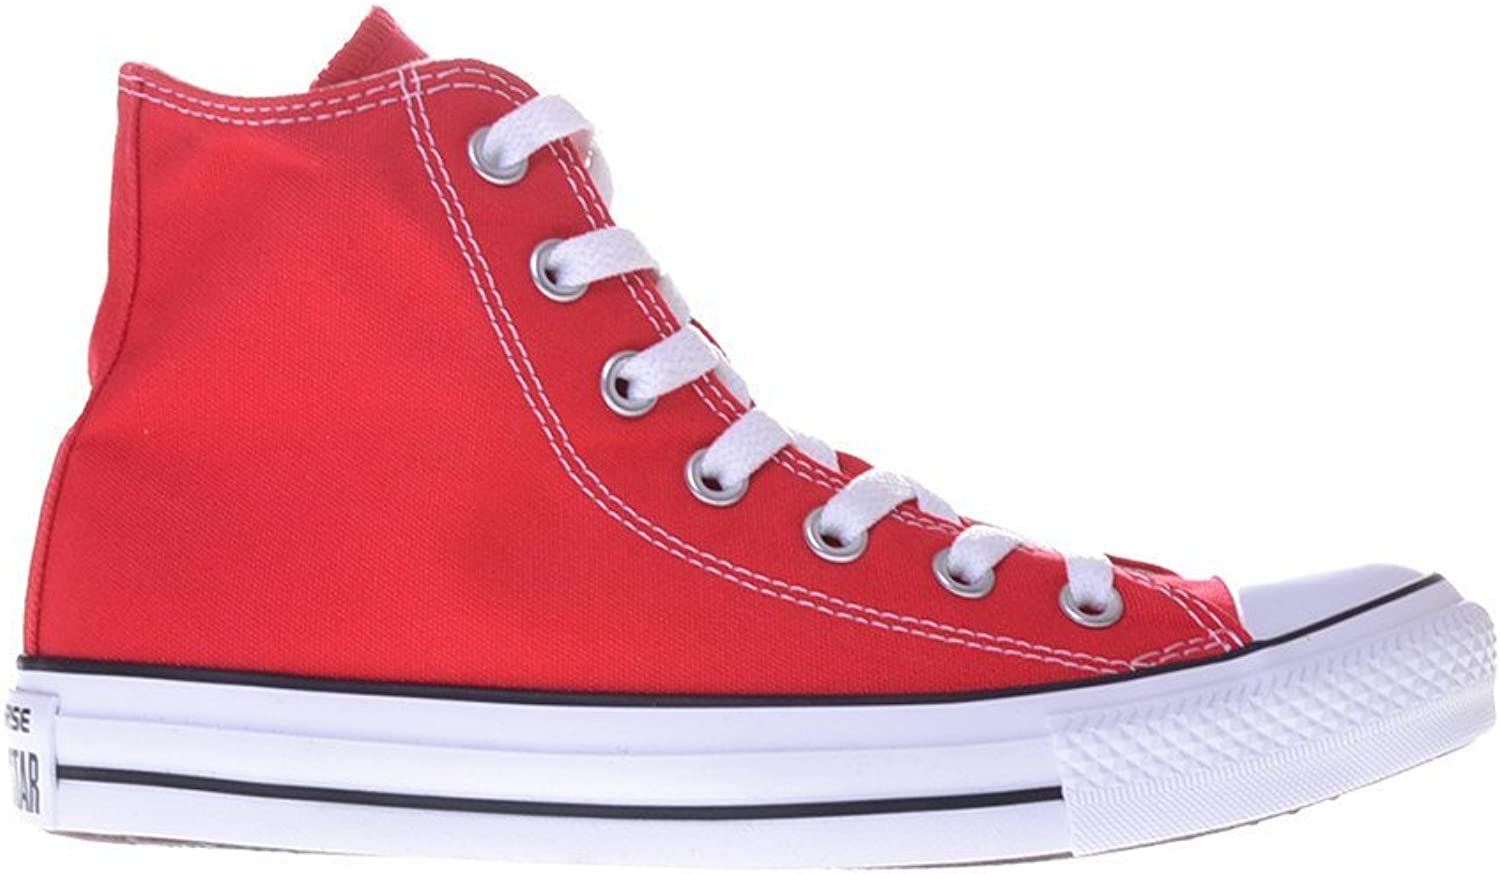 Converse Unisex Chuck Taylor All Star High Basketball shoes